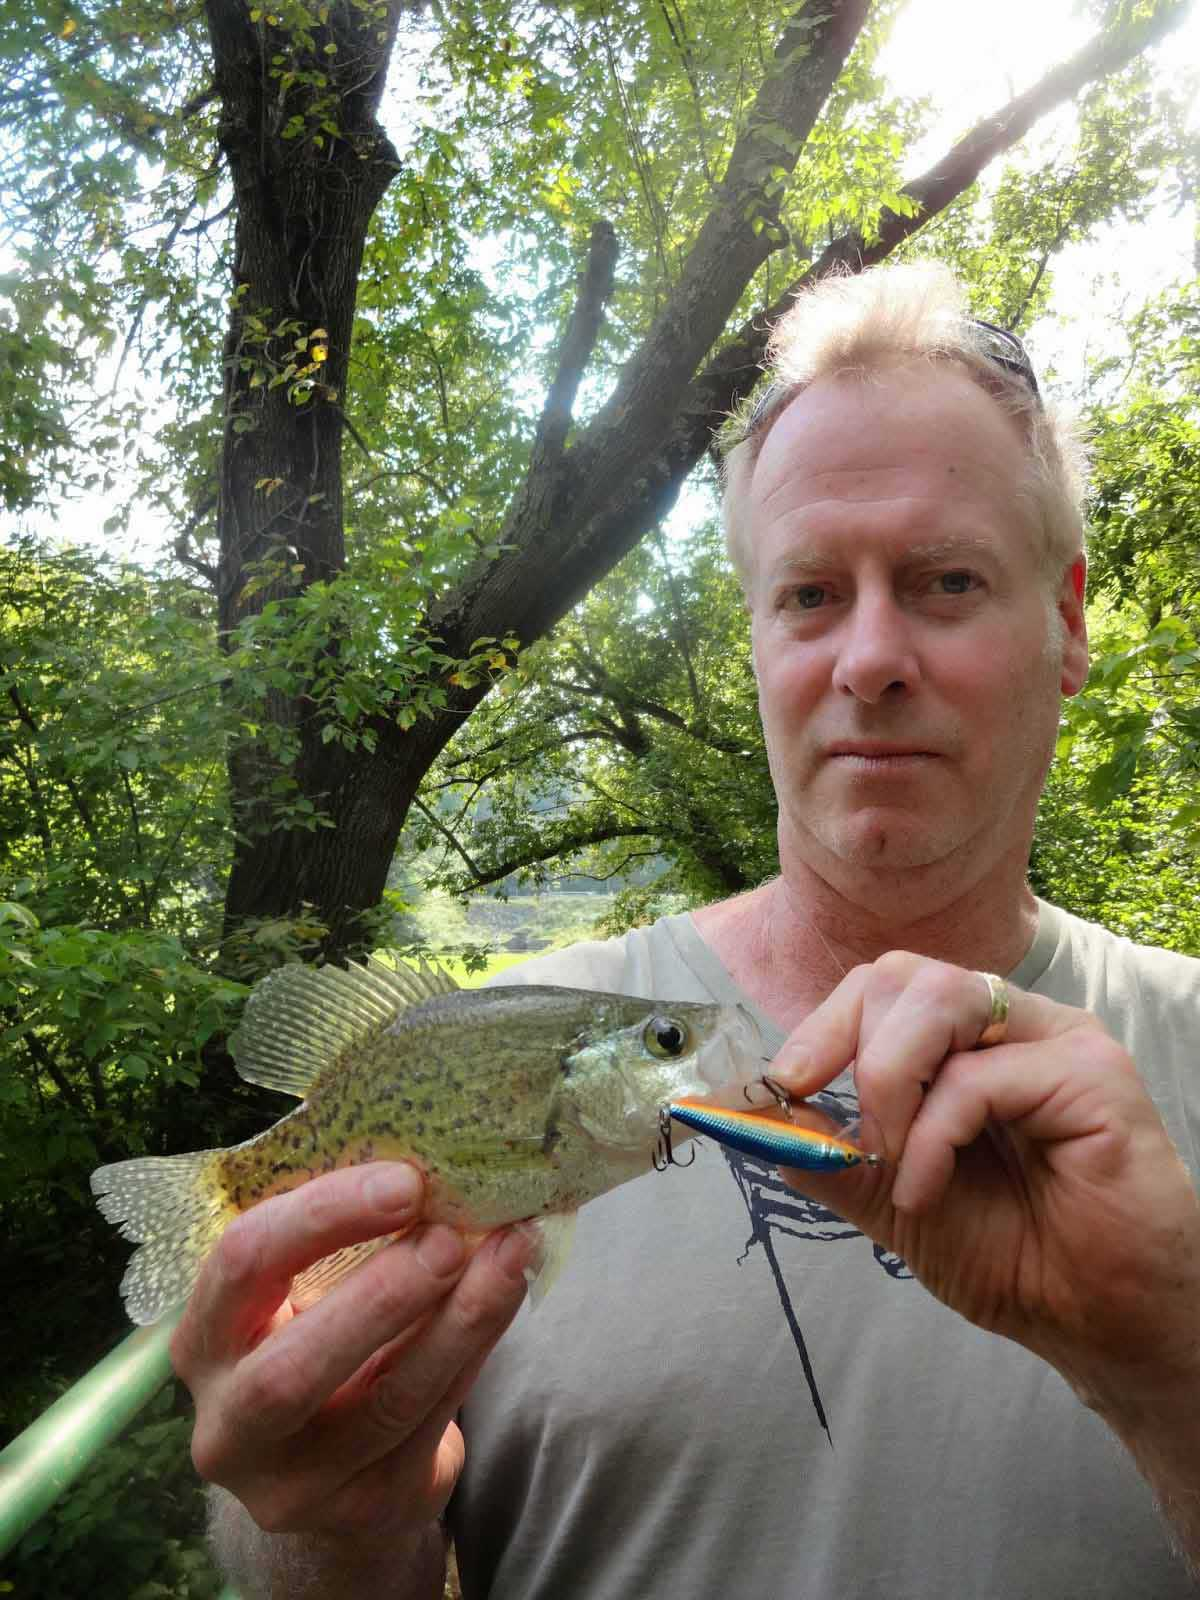 There is great fishing at Cooper River Park near Haddonfield, NJ.